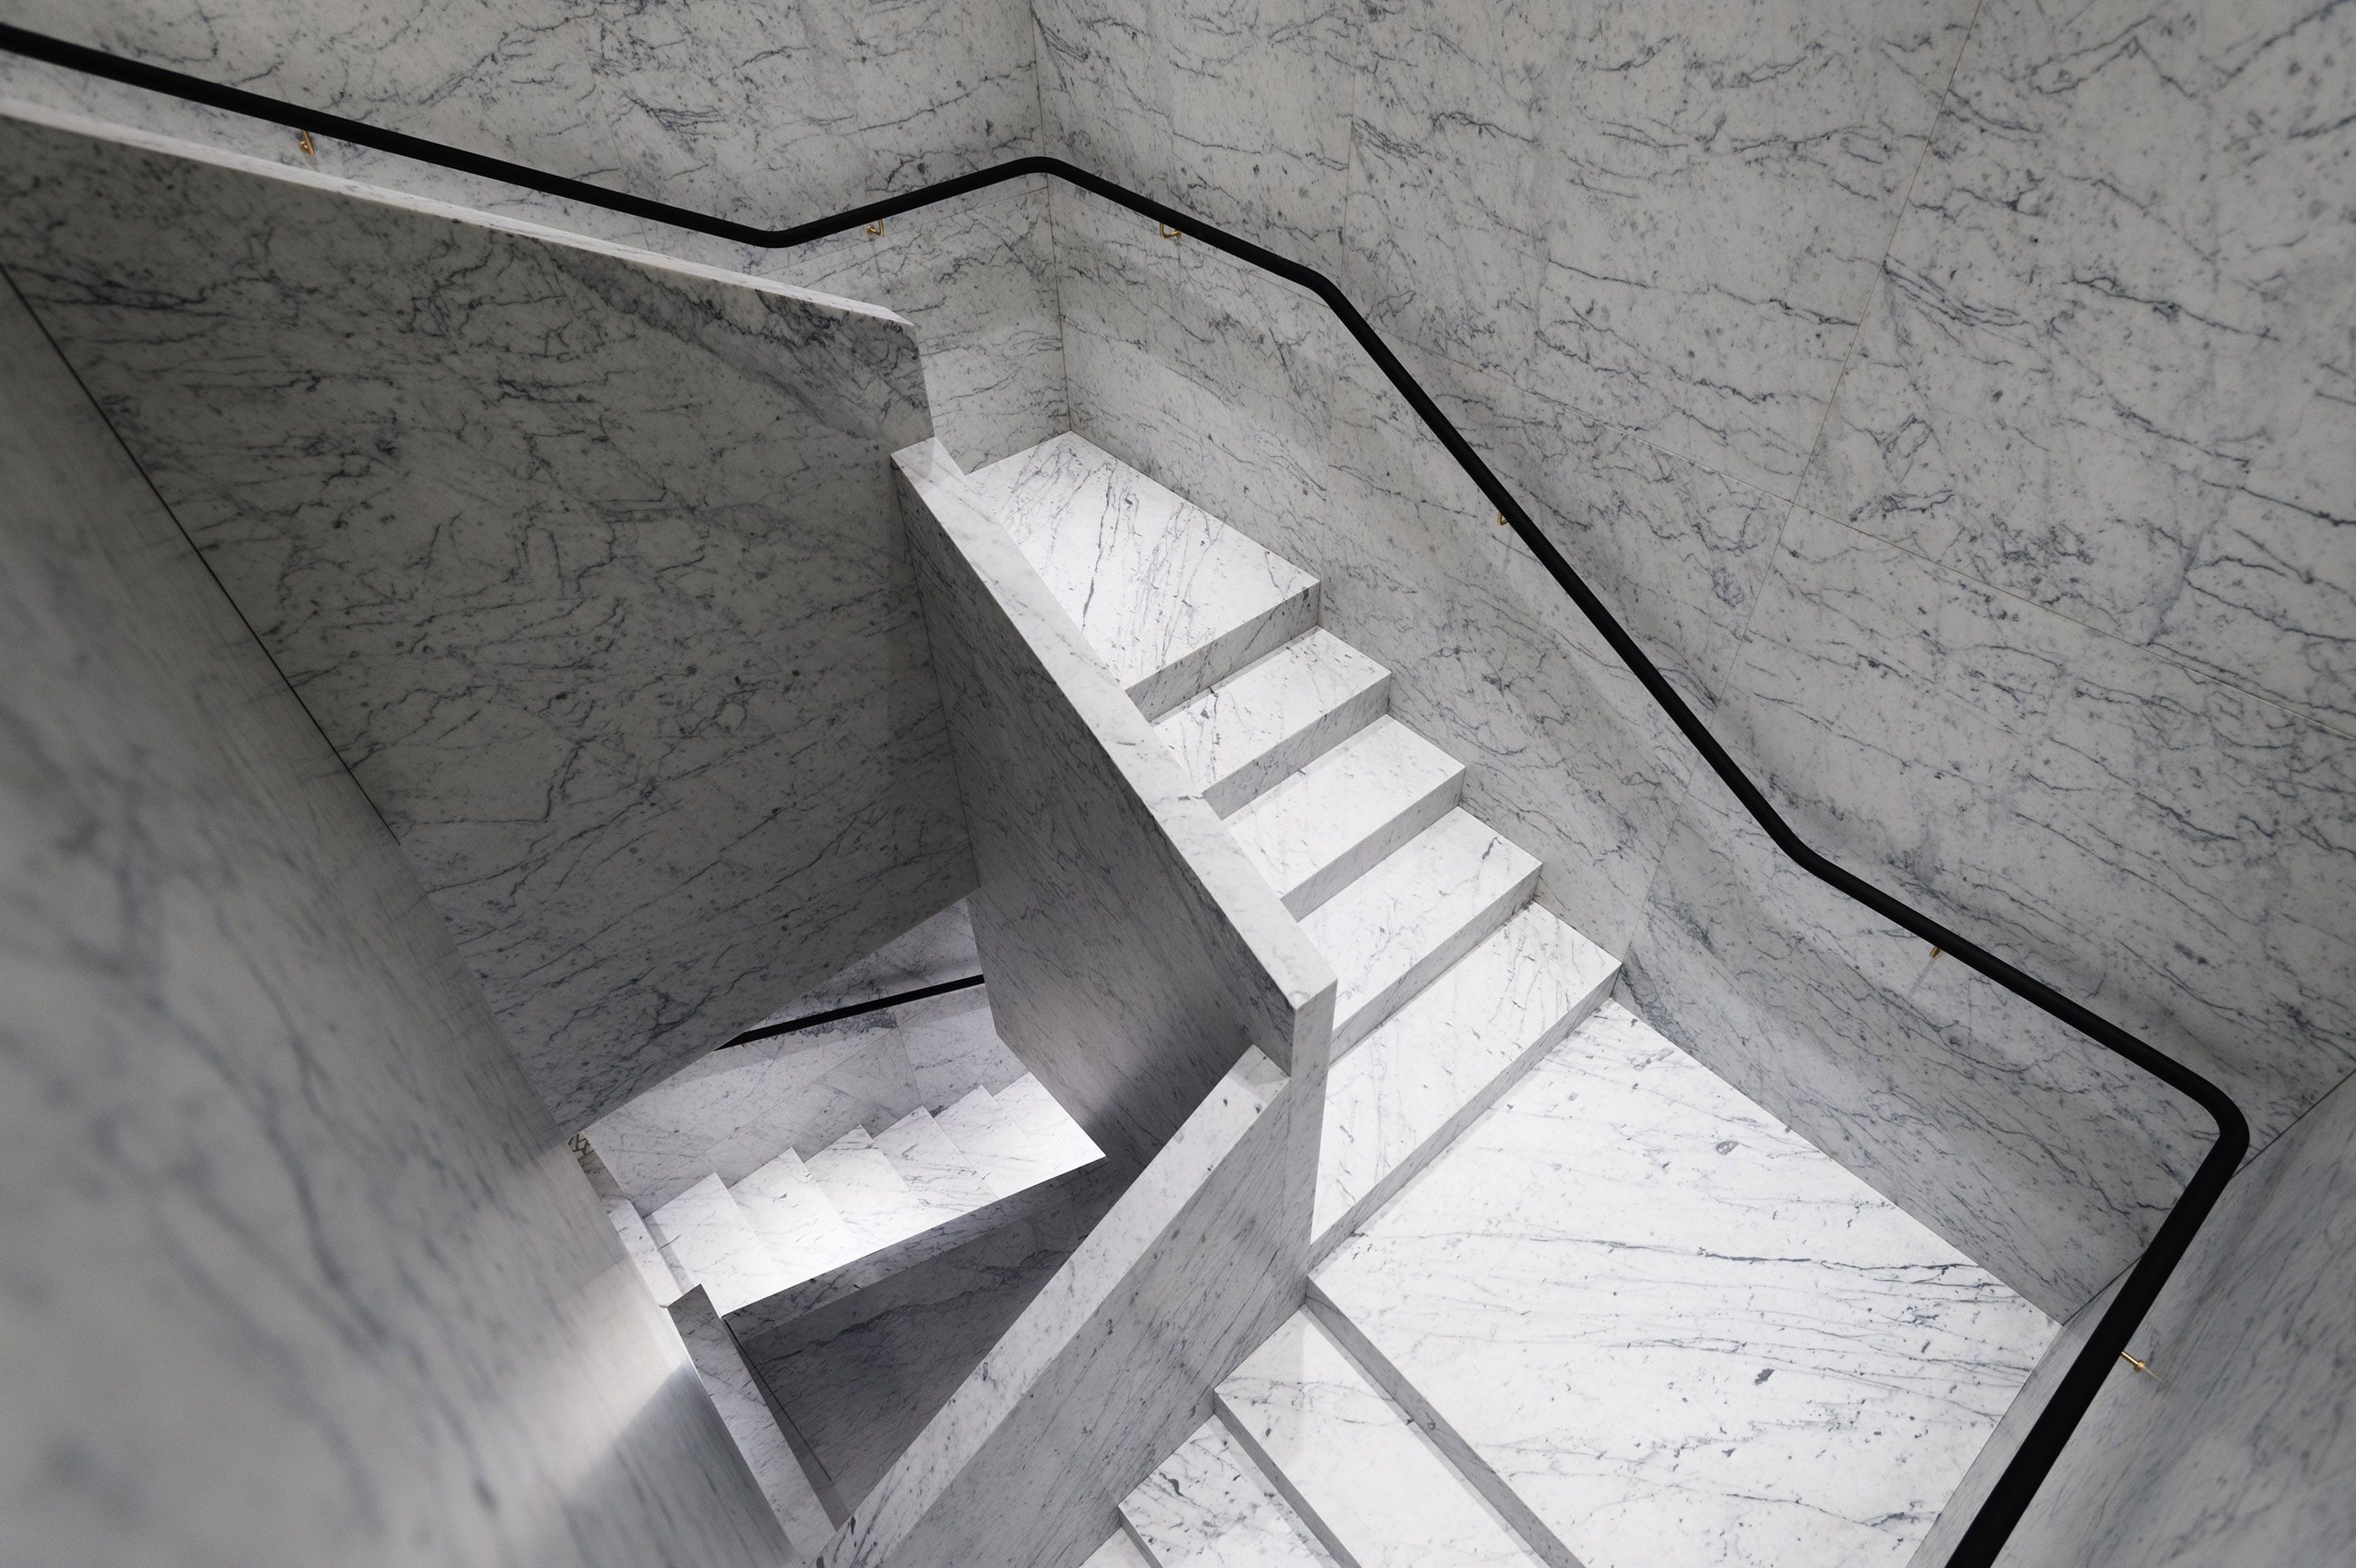 One of the two main marble staircases in classic David Chipperfield for Valentino style. www.valentino.com